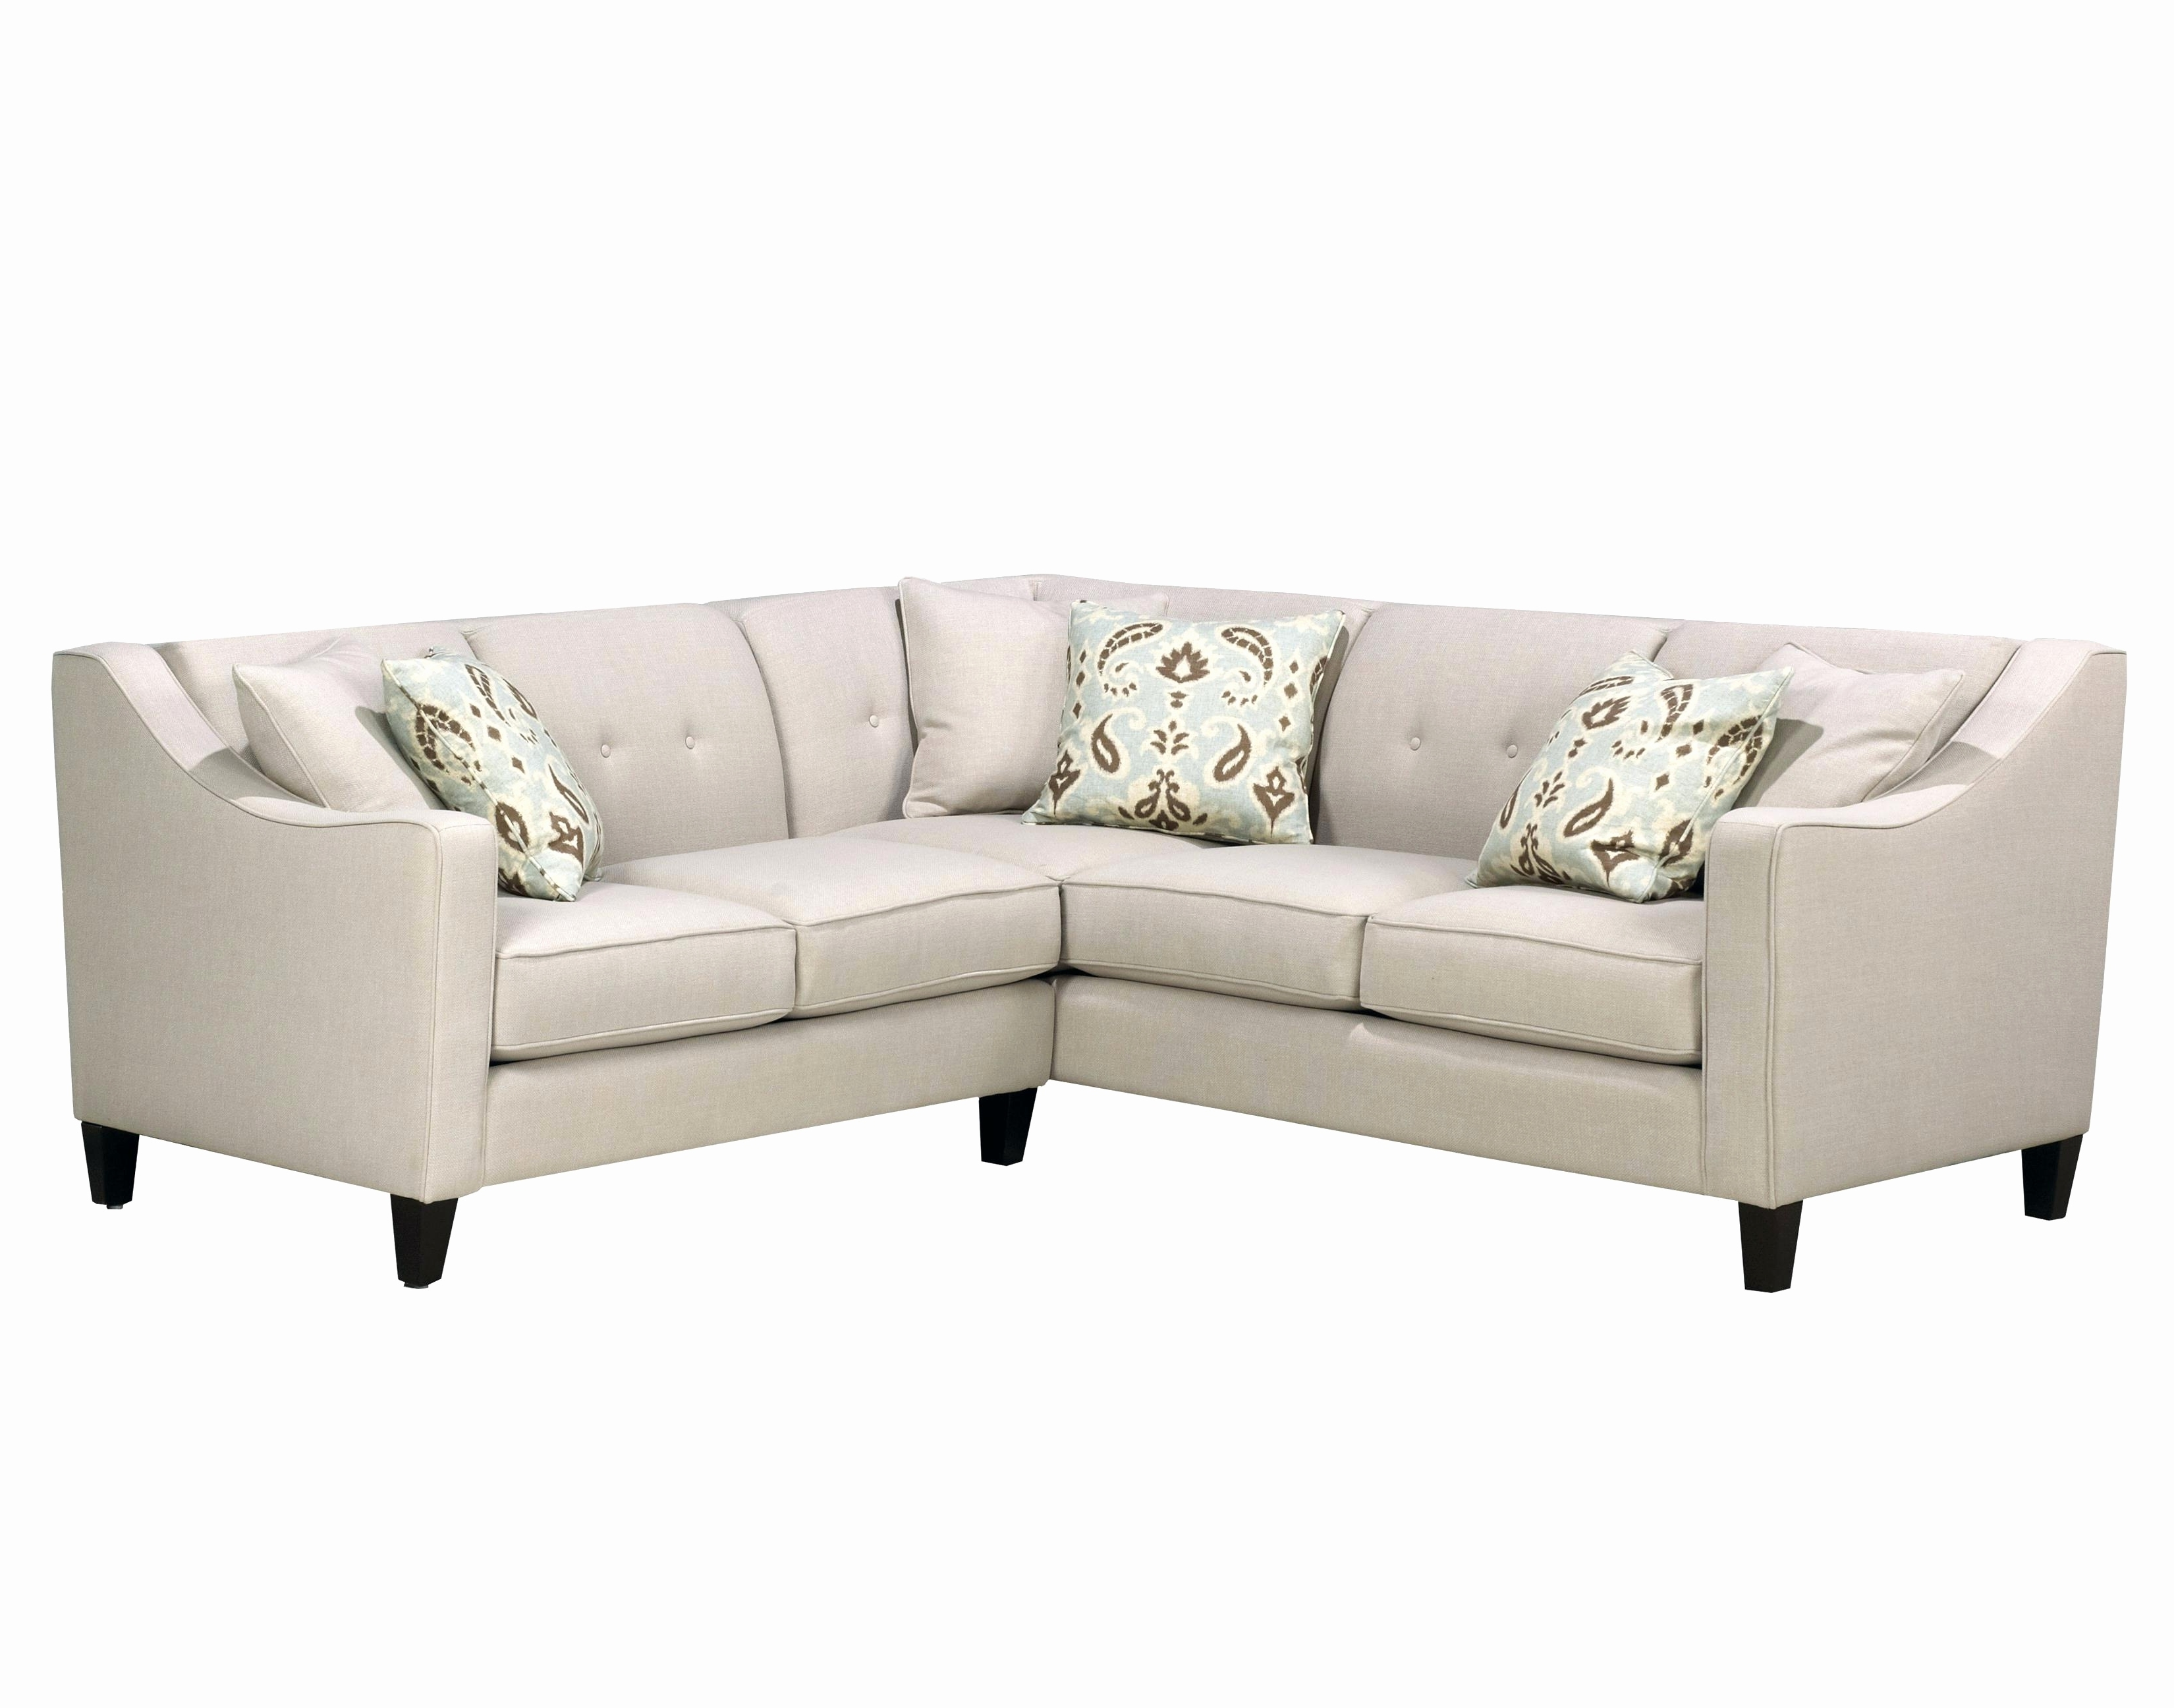 Lovely Affordable Tufted Sofa 2018 – Couches And Sofas Ideas Intended For 2018 Affordable Tufted Sofas (View 12 of 20)